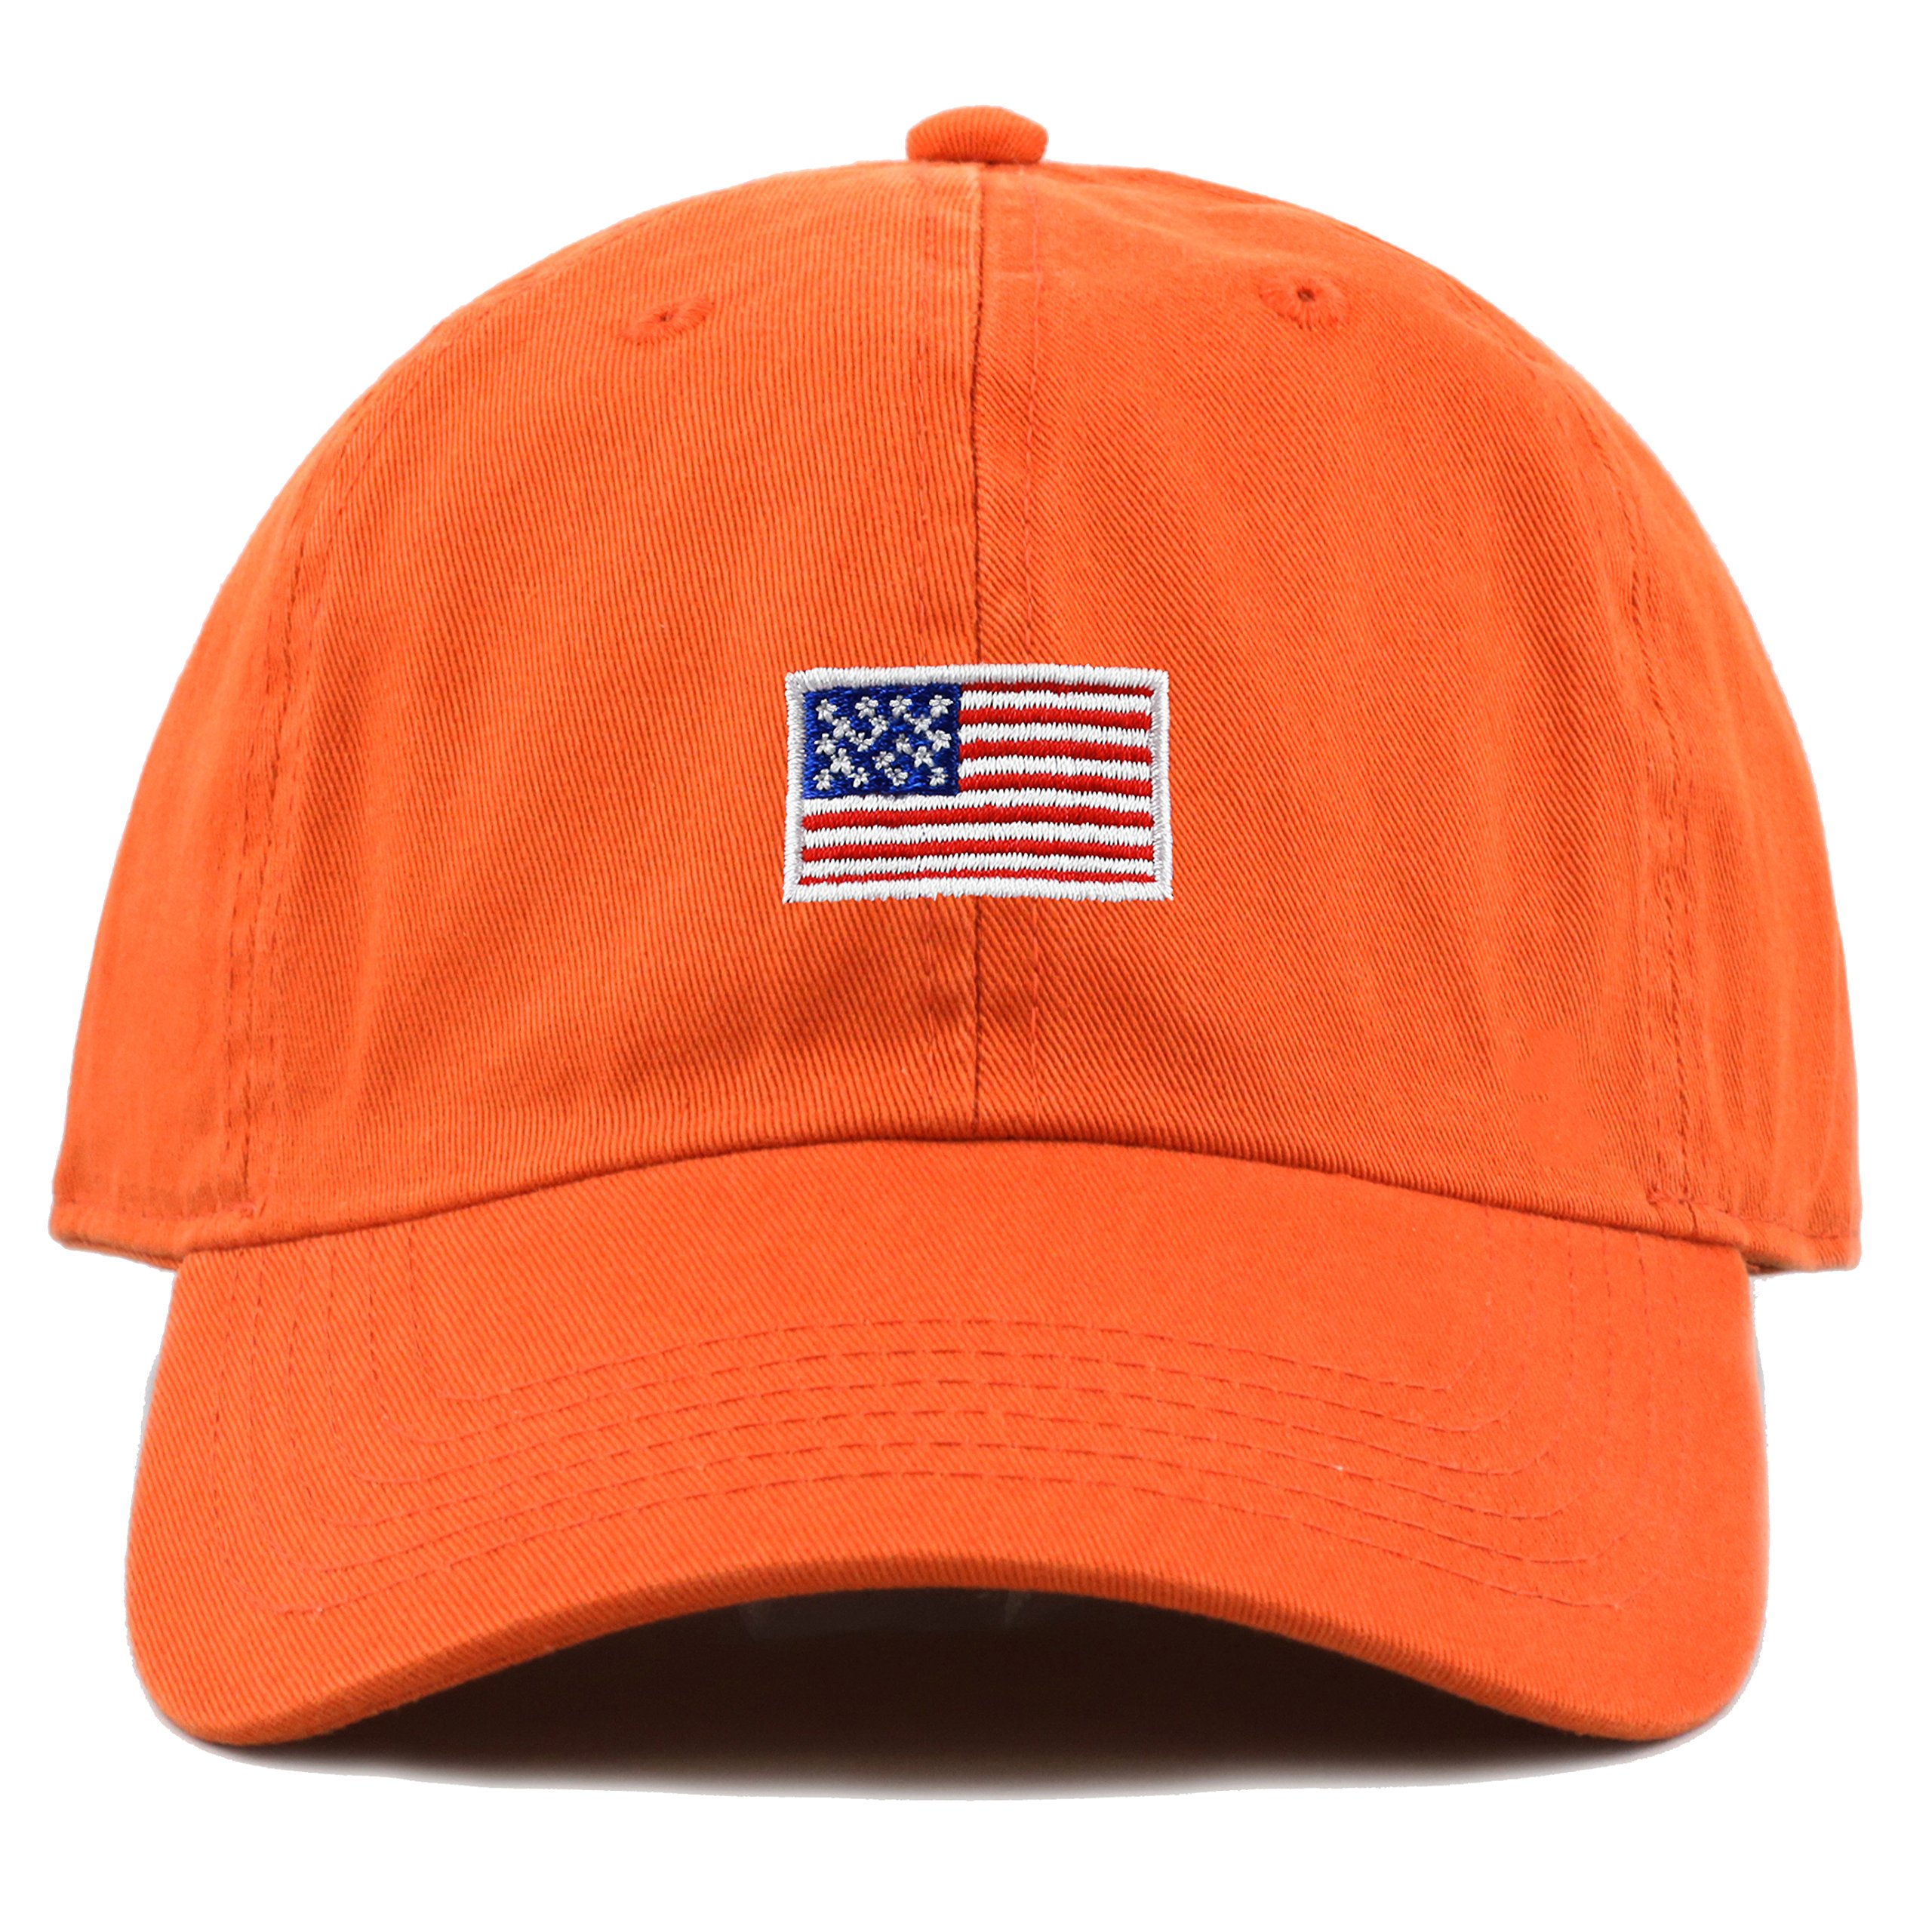 THE HAT DEPOT Kids American Flag Washed Low Profile Cotton and Denim Plain Baseball Cap Hat (6-9yrs, Orange)